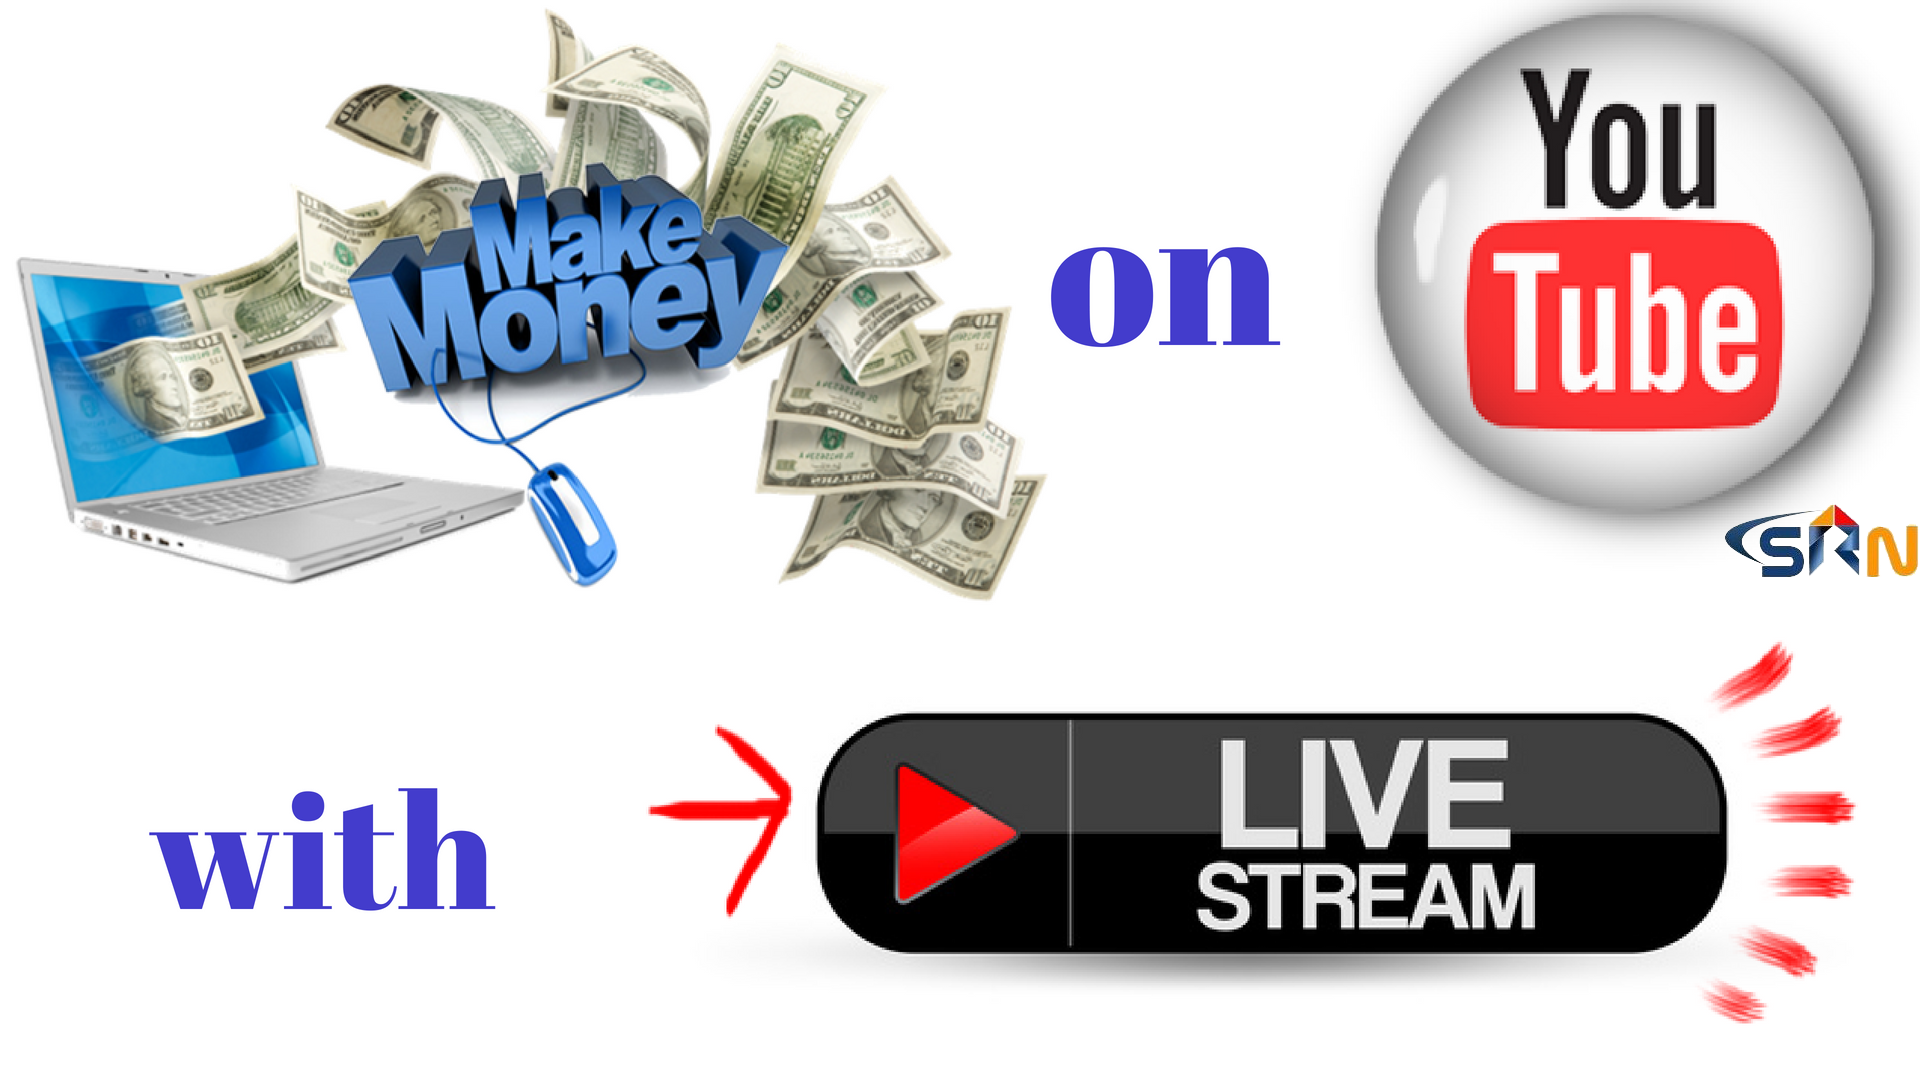 Getting more money on live stream in your youtube channel